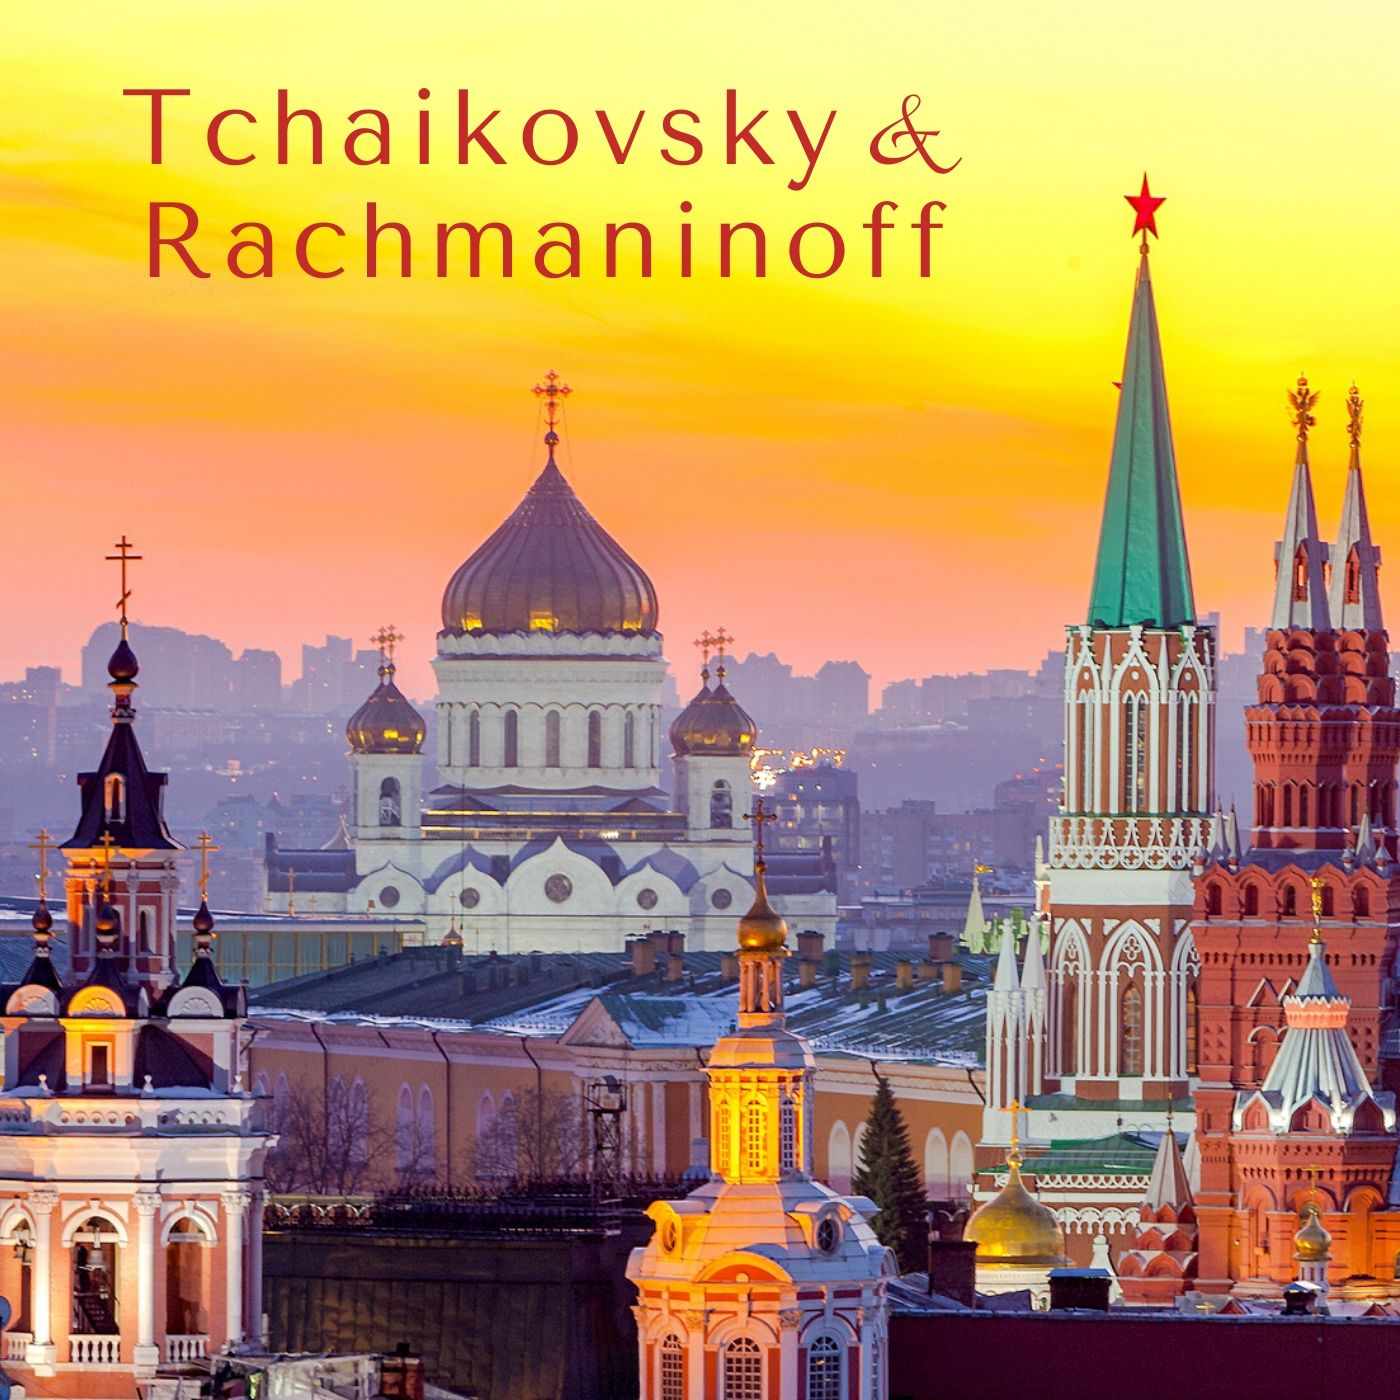 Tchaikovsky & Rachmaninoff - Russian Classical Music